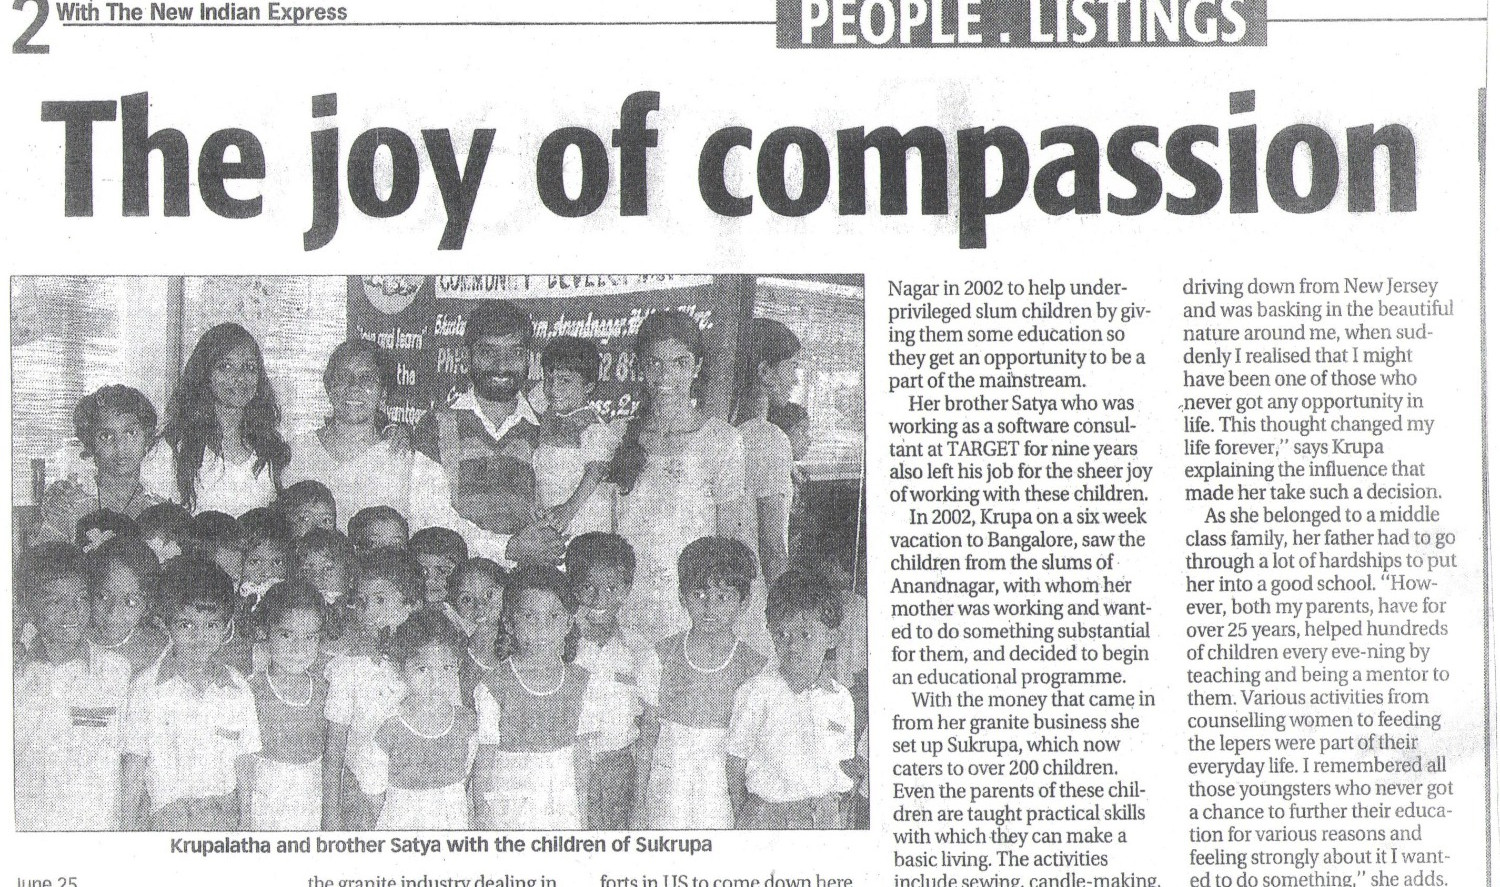 Indian Express, 26th June, 2007